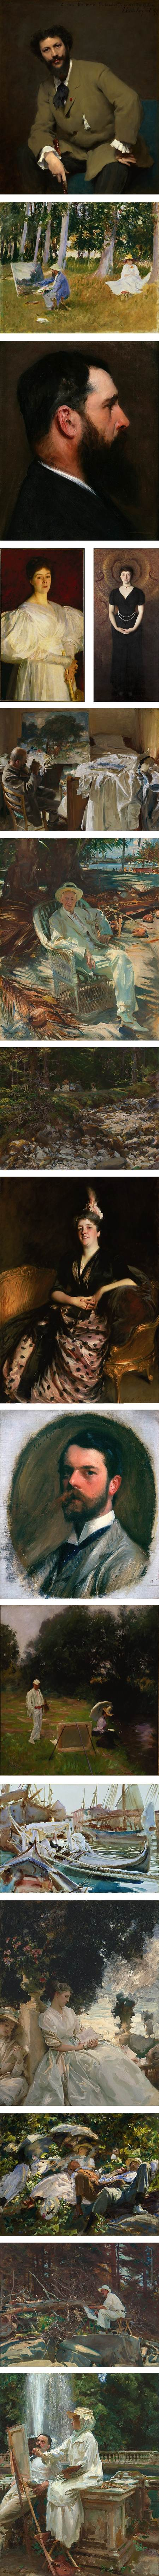 Sargent: Portraits of Artists and Friends, John Singer Sargent exhibition at the Metropolitan Museum of Art